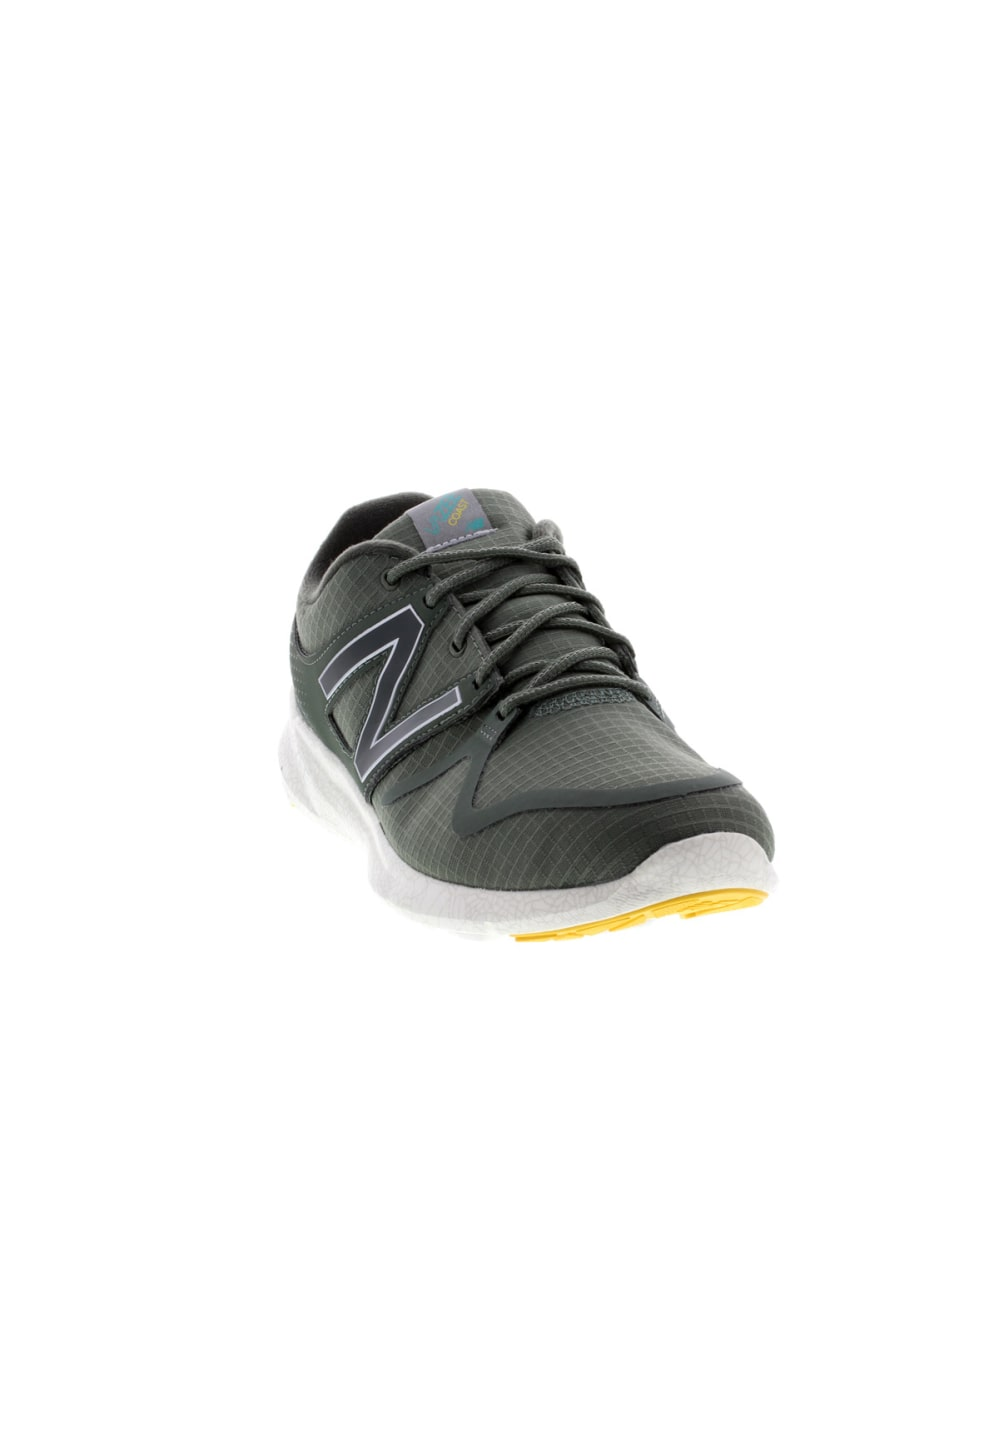 New Balance Vazee Coast Chaussures running pour Homme Gris